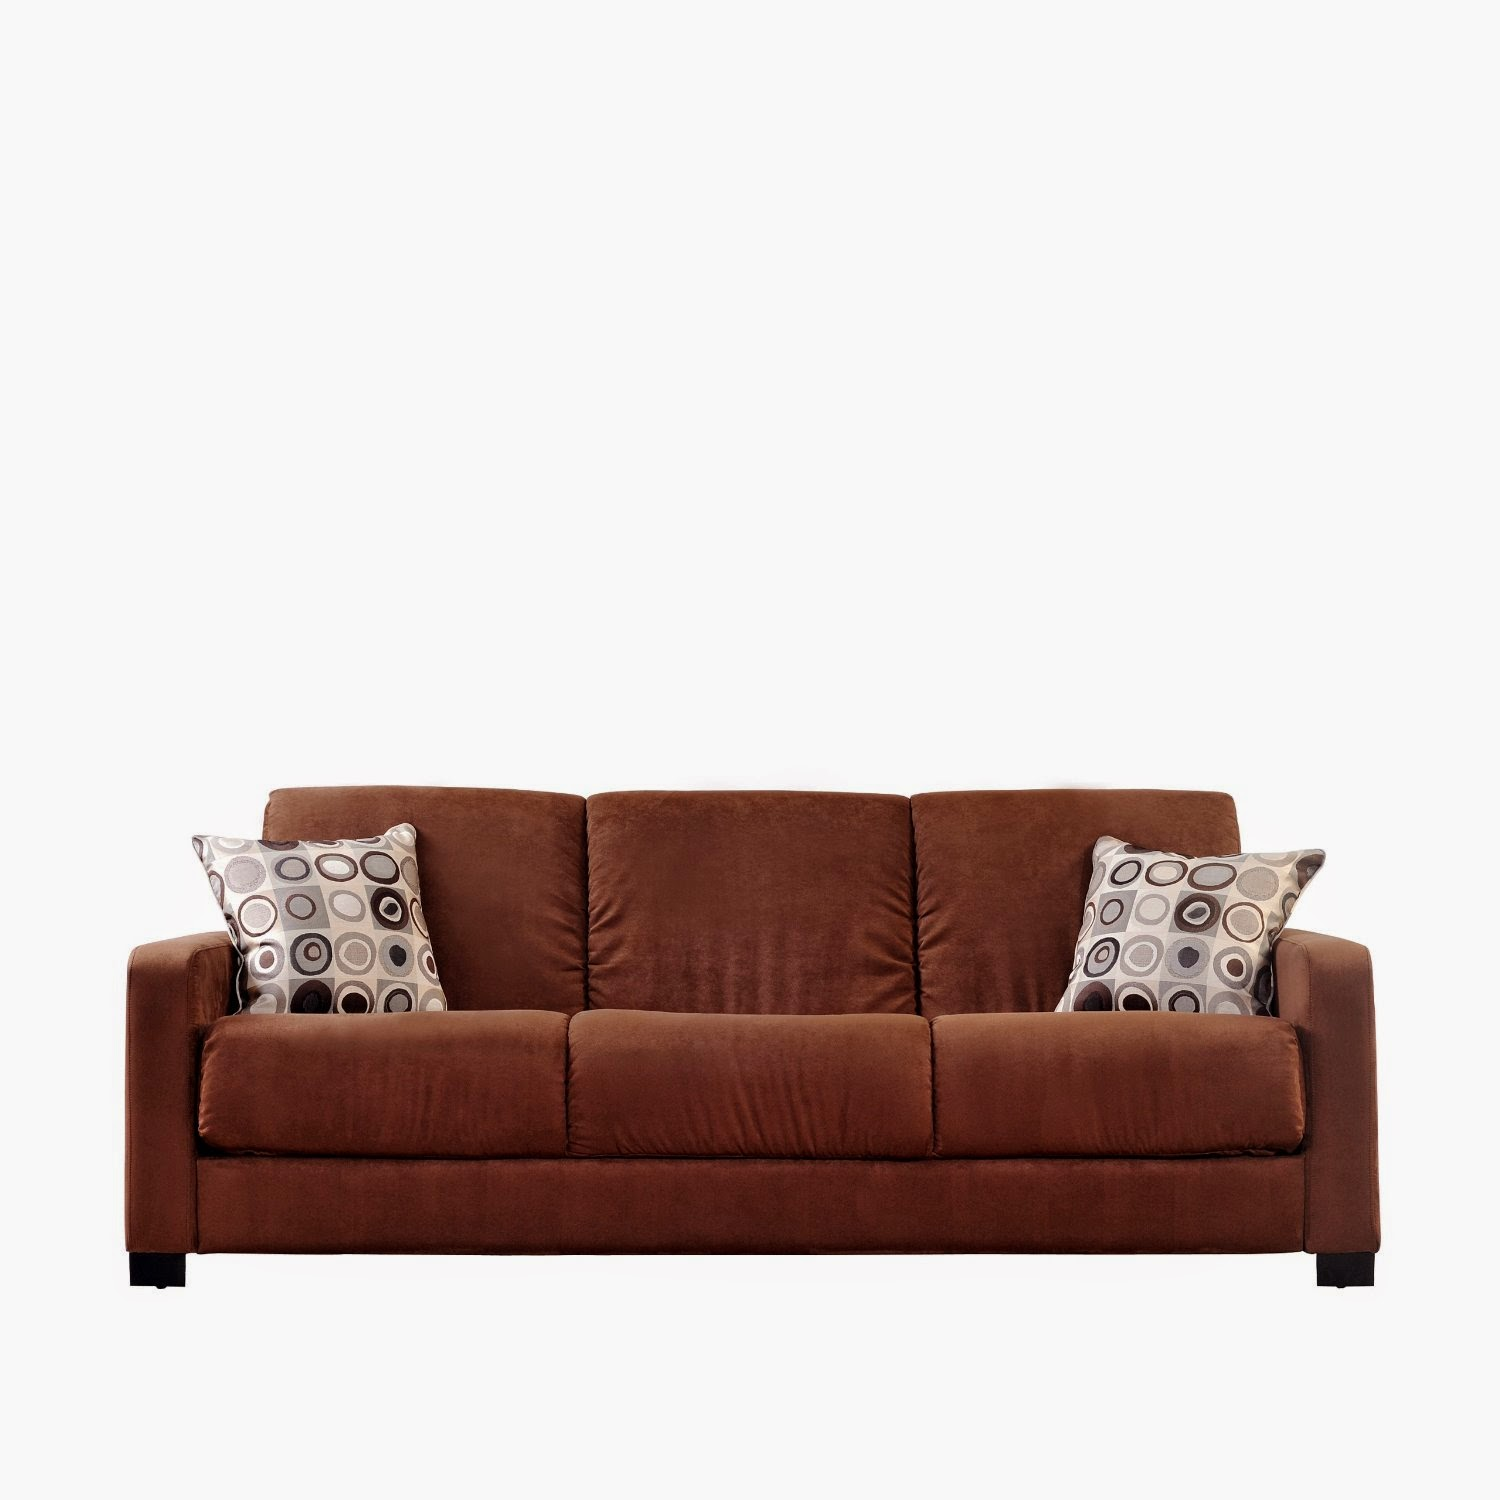 Brown Microfiber Sofa Bed Homeware Peyton Couch Beds